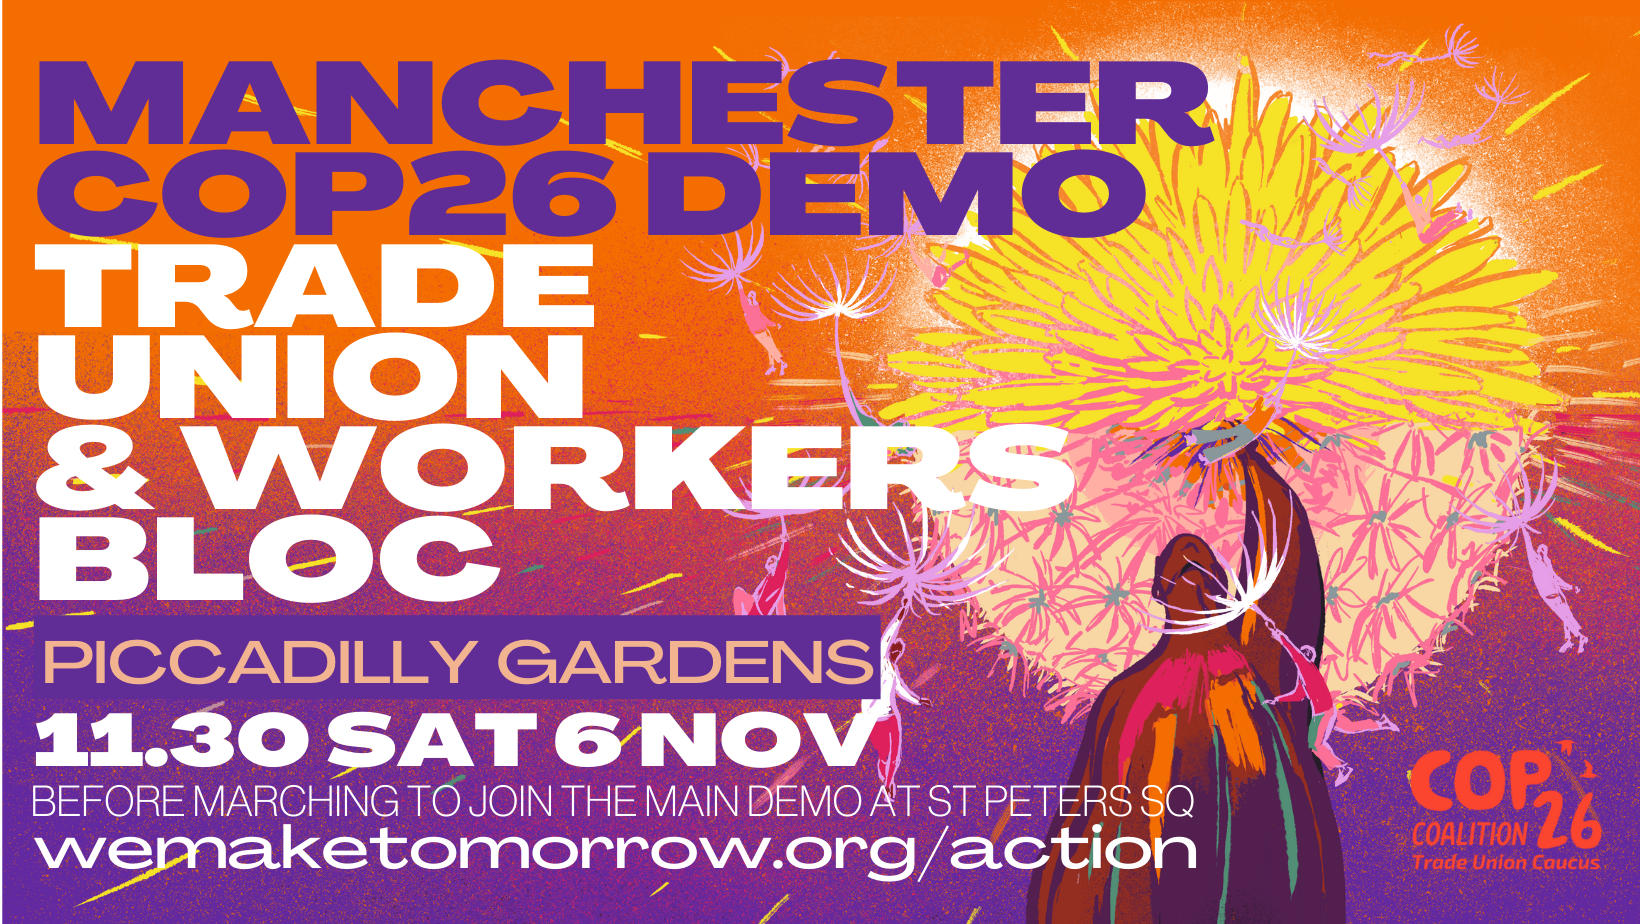 Manchester COP26 demo. Trade union / workers bloc. Piccadilly Gardens, 11:30am Sat 6 Nov. Then joining the main demo in St Peter's Square. wemaketomorrow/action